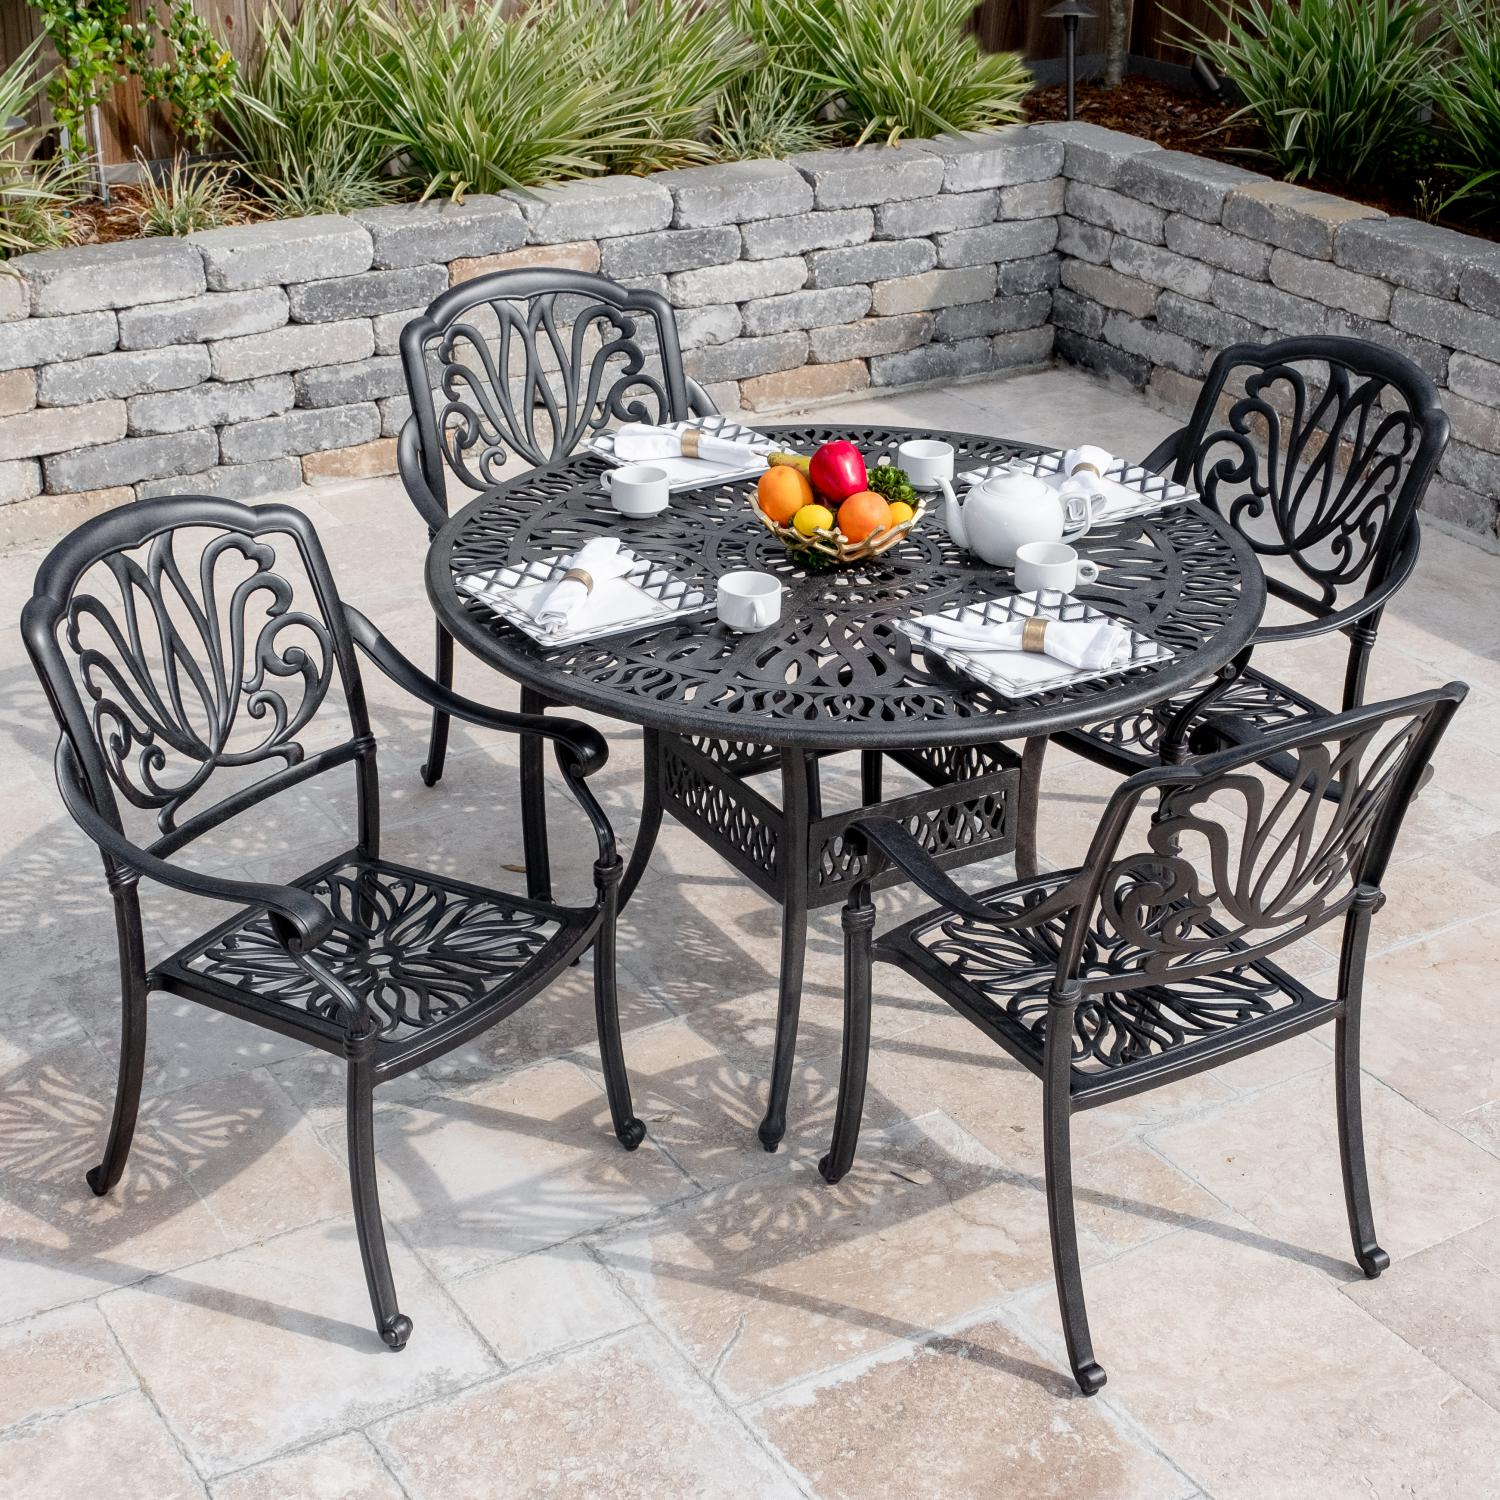 Details about roxbury 5 piece cast aluminum patio dining set 48 inch round table by darlee